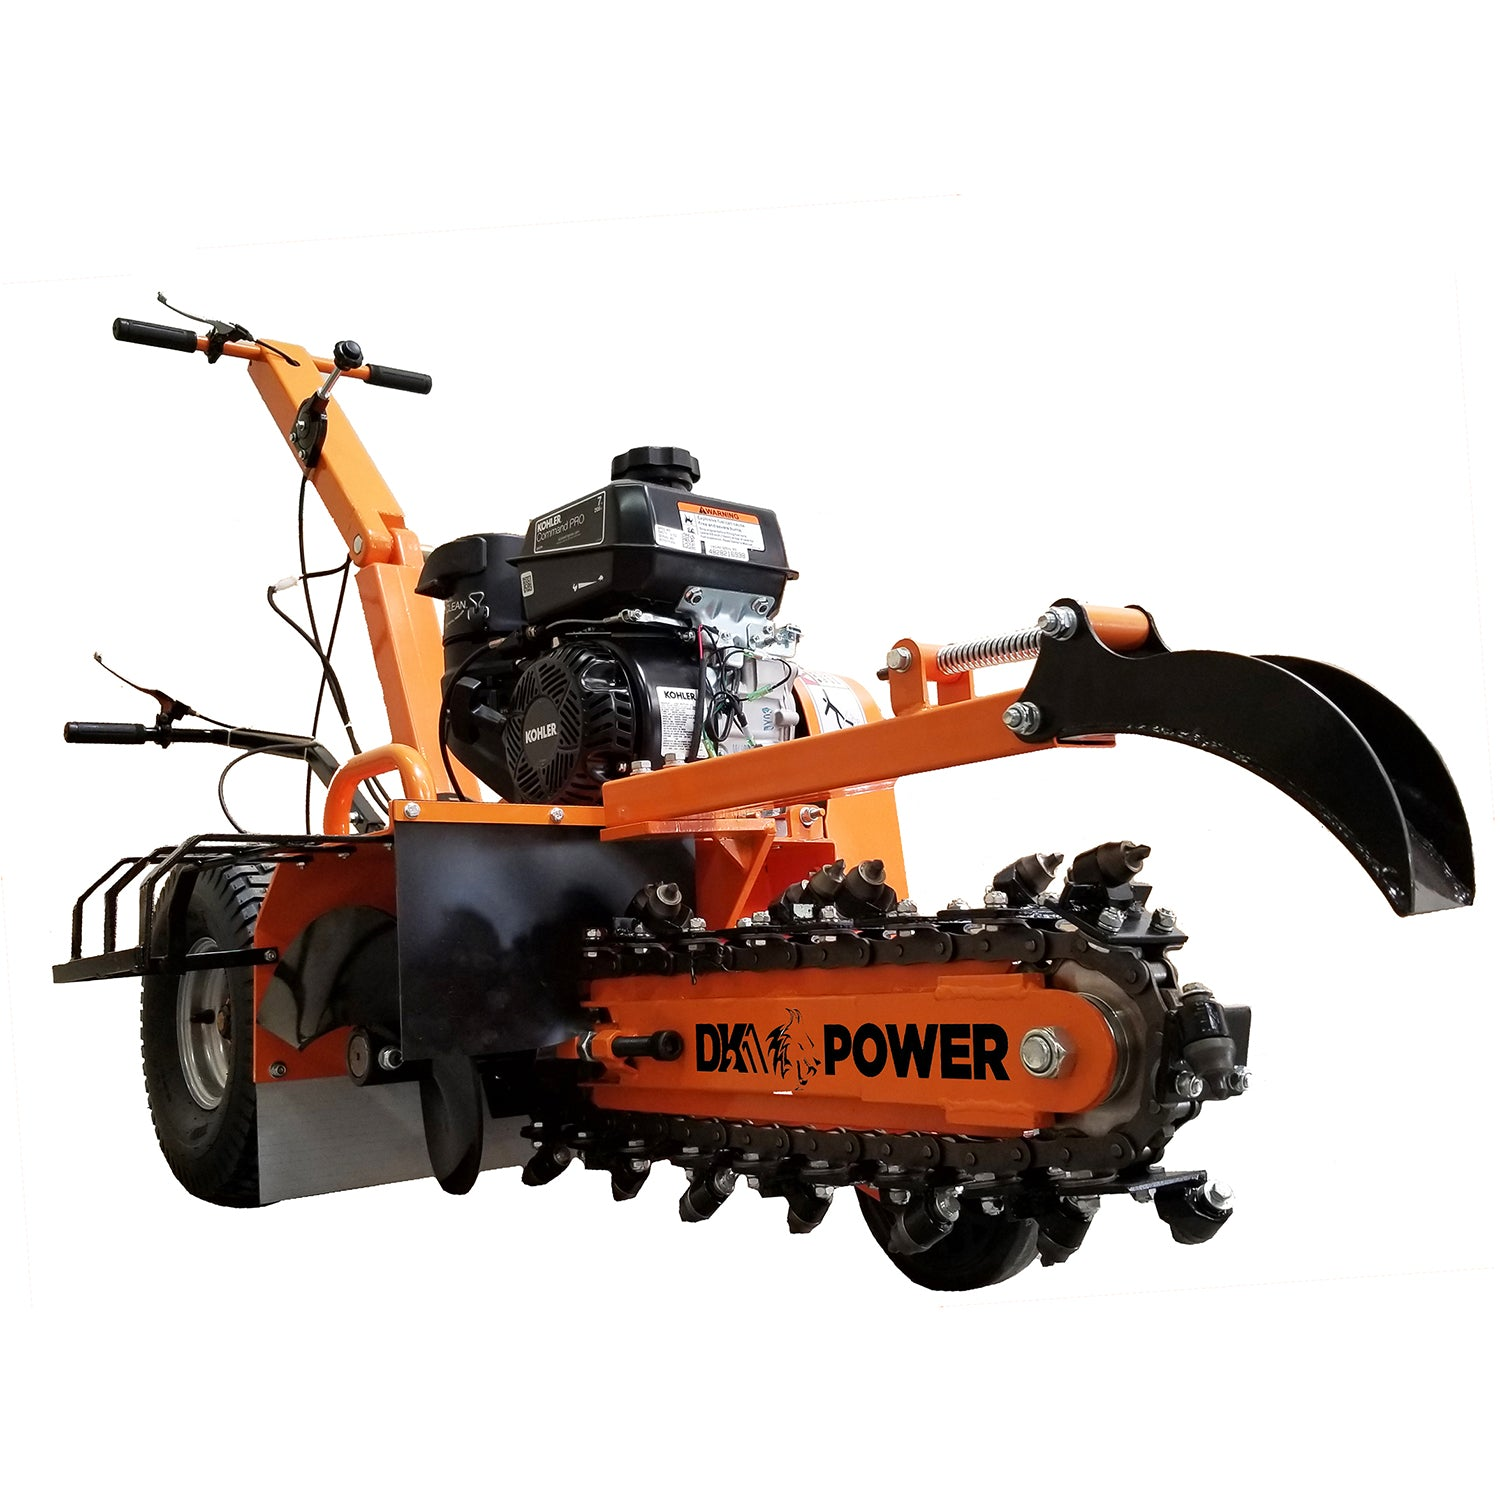 Detail K2 18 Inch 7 HP Trencher - OPT118-Wood Splitter Outlet